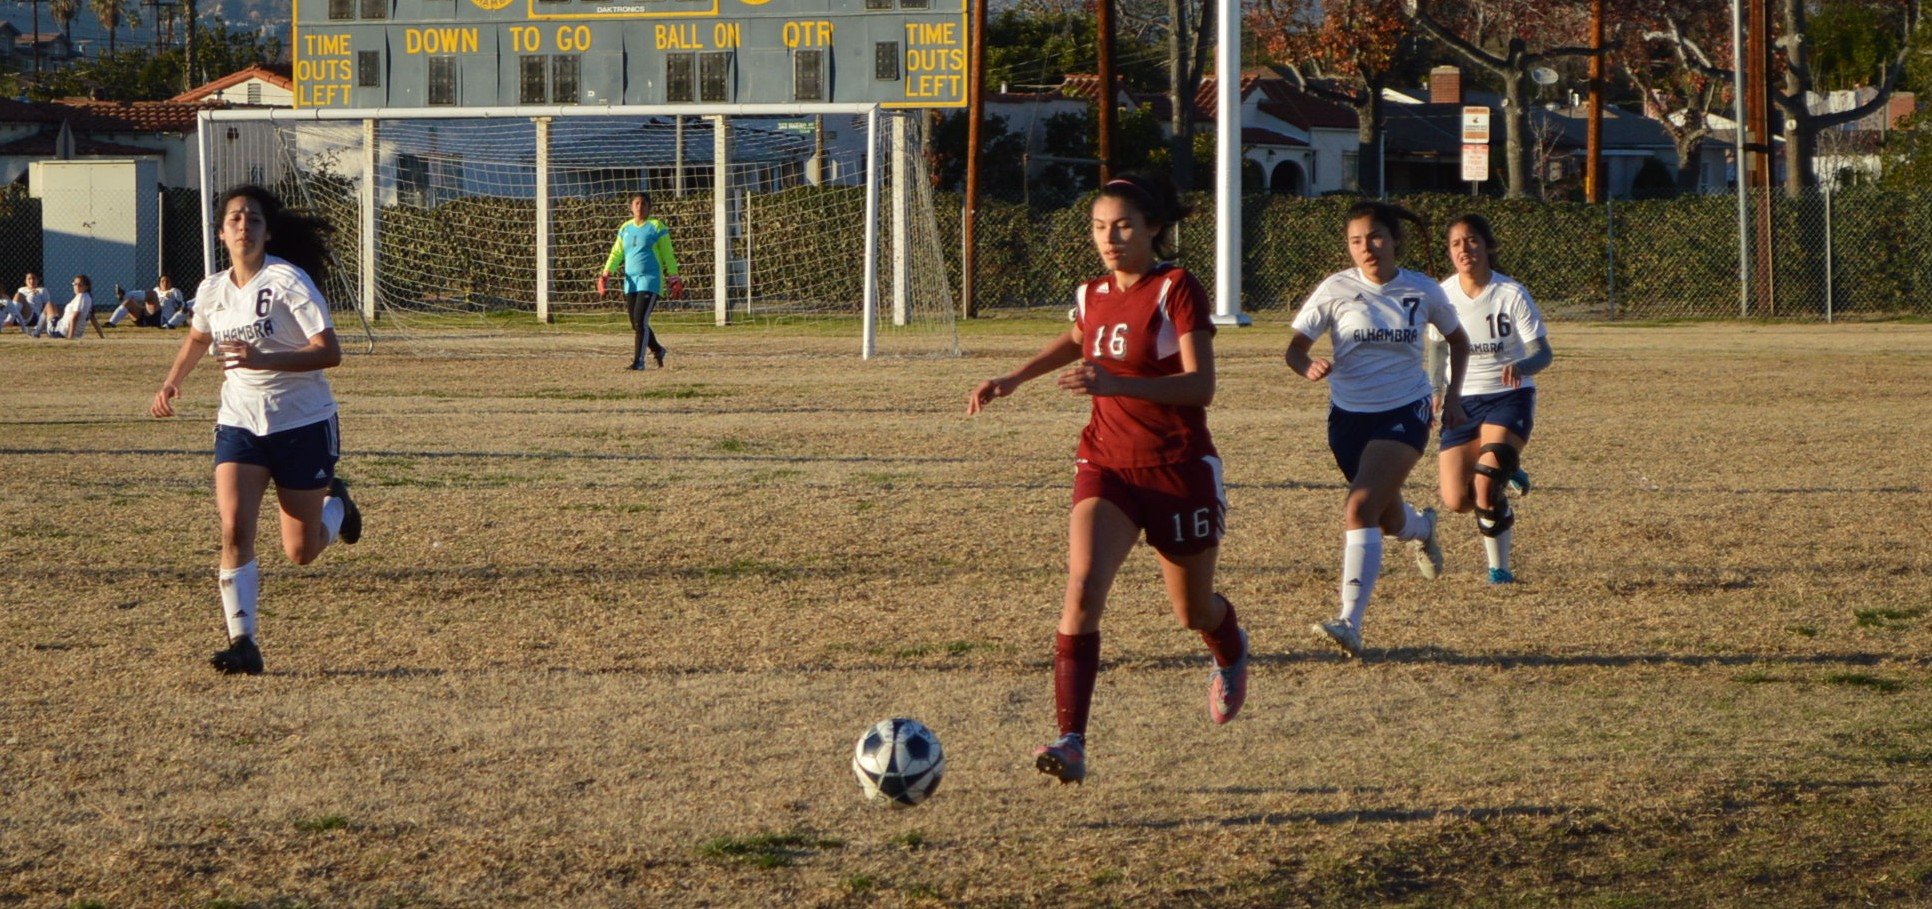 Freshman Noelle Frasher (16) dribbles the soccer ball down the field.